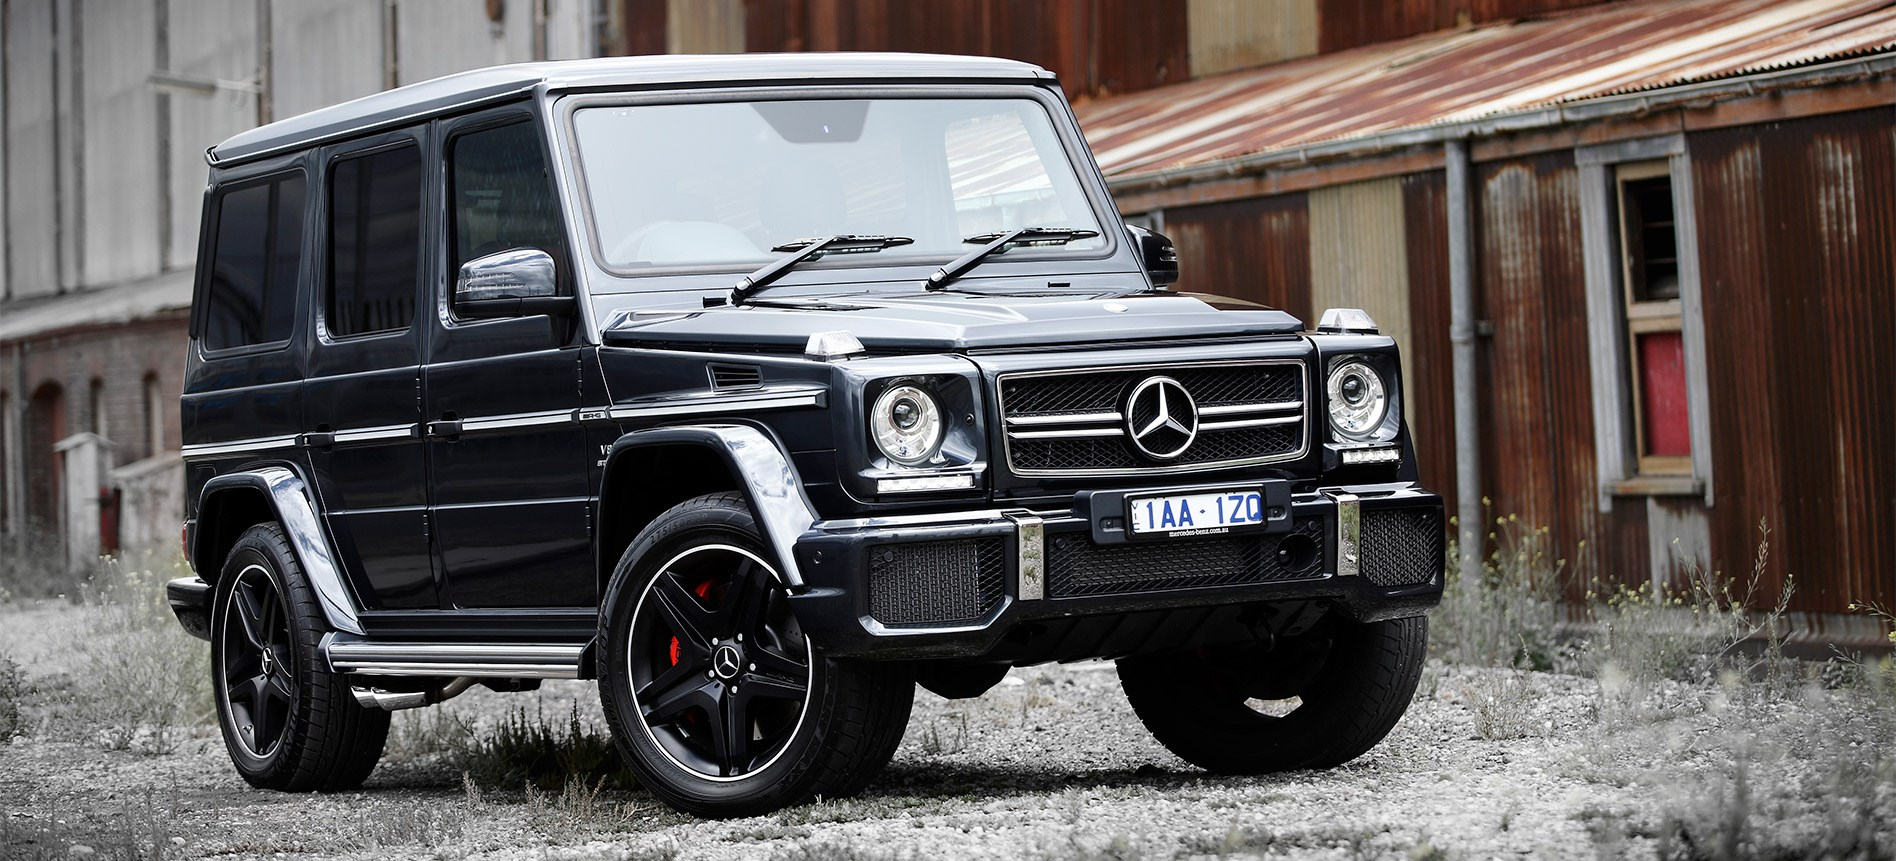 mercedes benz g63 amg mercedes benz g63 amg seats 4x4 australia. Black Bedroom Furniture Sets. Home Design Ideas